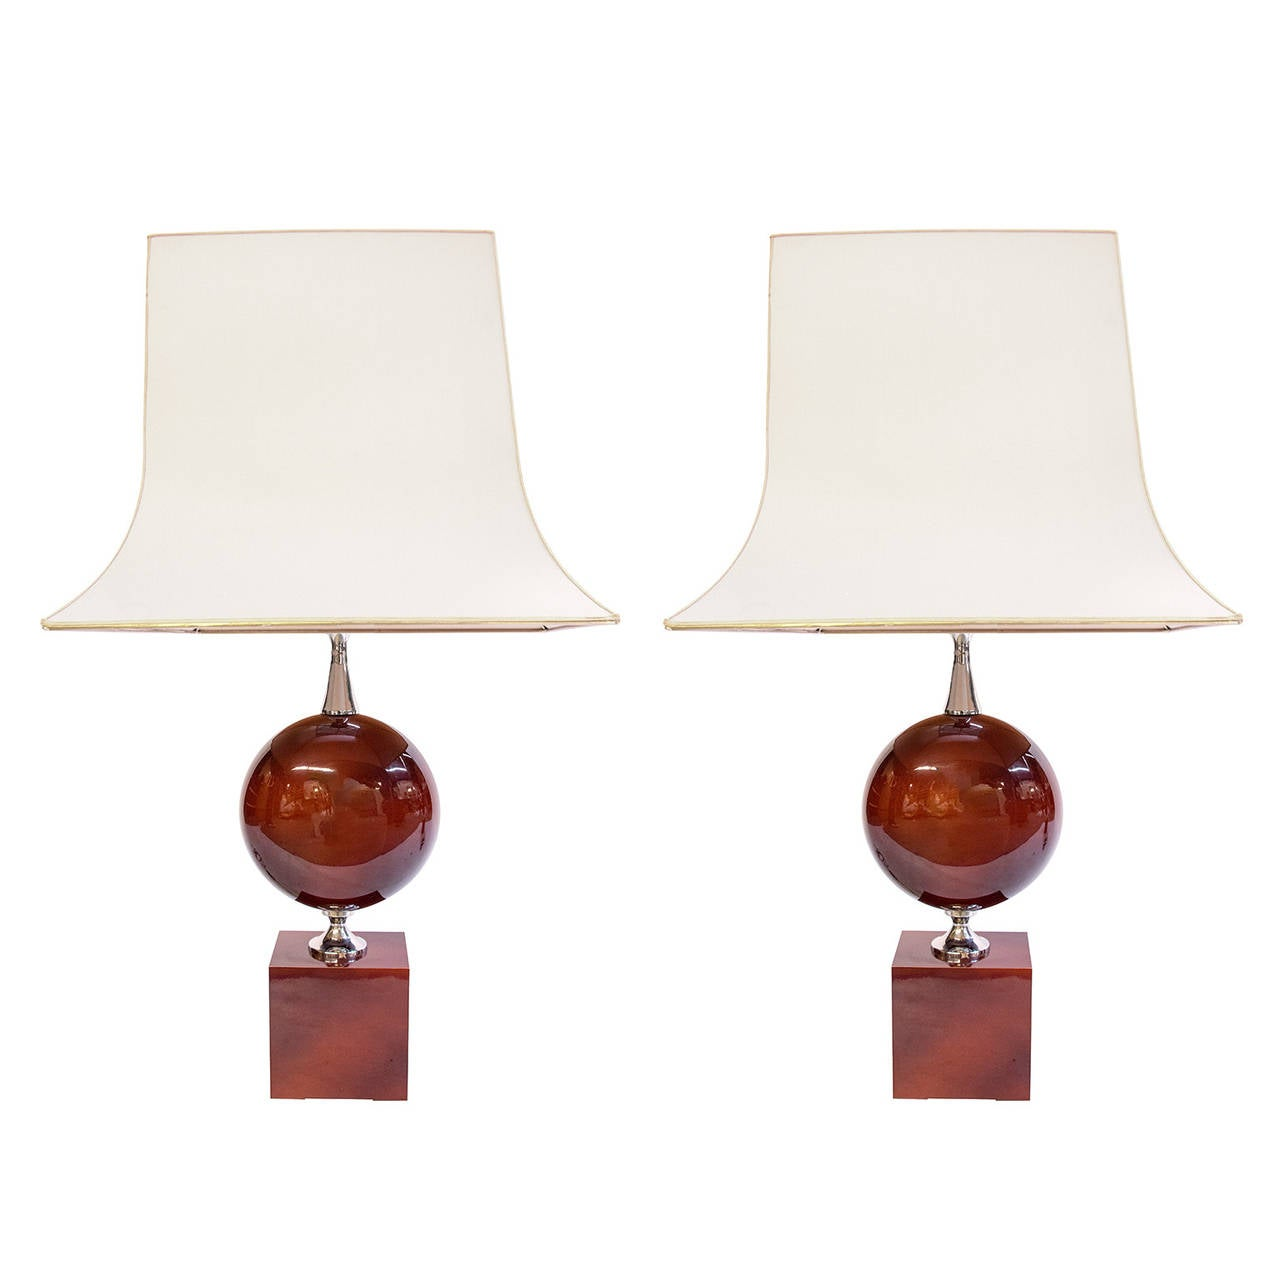 Pair of Red Lacquer Lamps by Philippe Barbier, France, 1970s